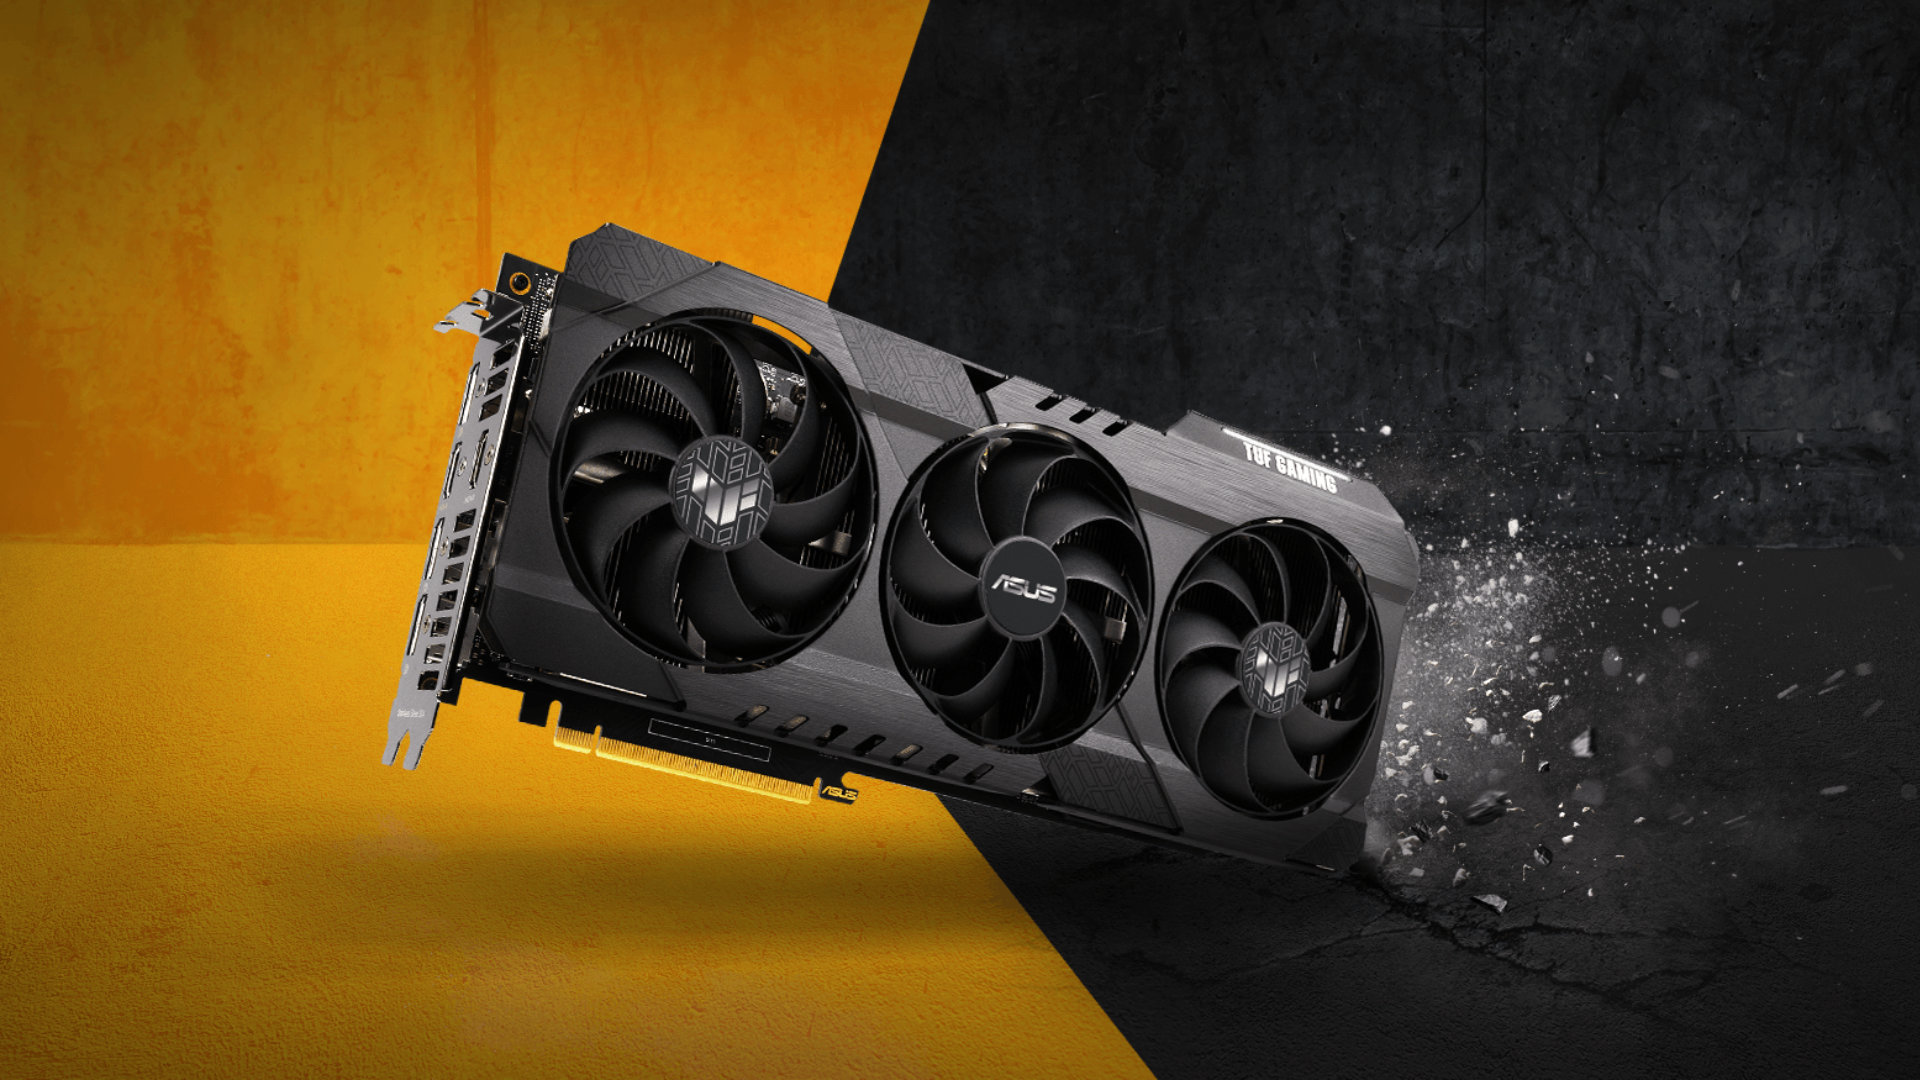 Some Nvidia RTX 3080 and 3070 graphics cards finally get Resizable BAR support